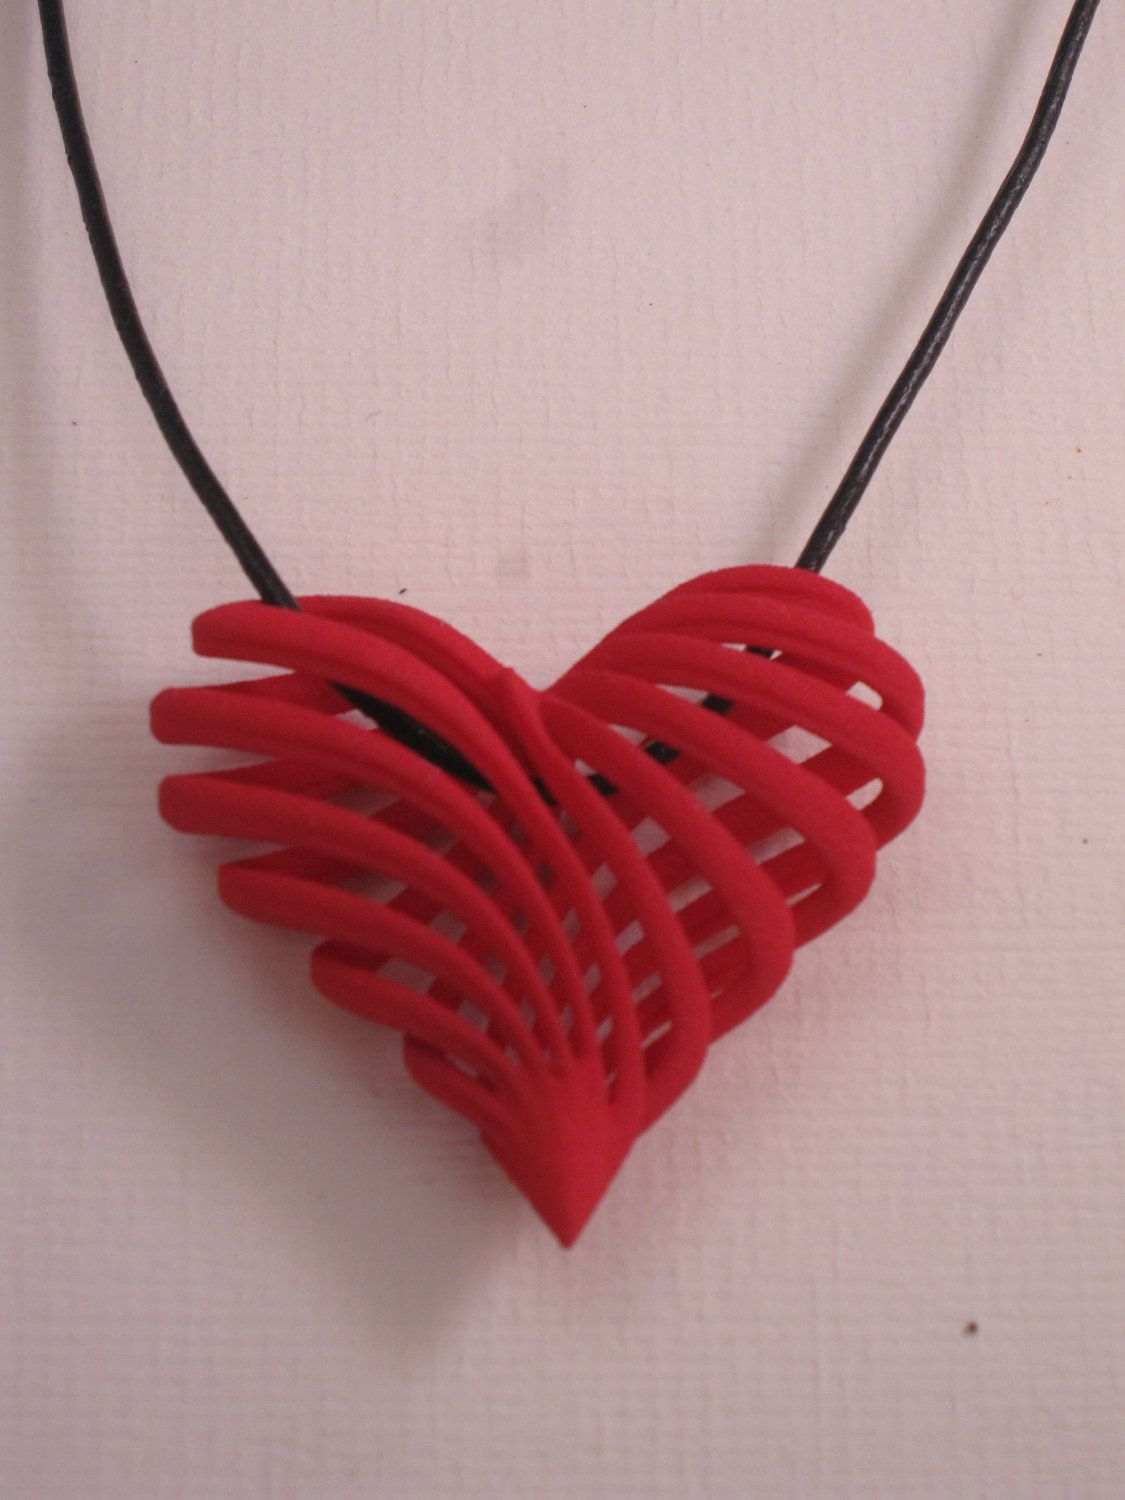 3d printed jewelry My twisted heart pendant by